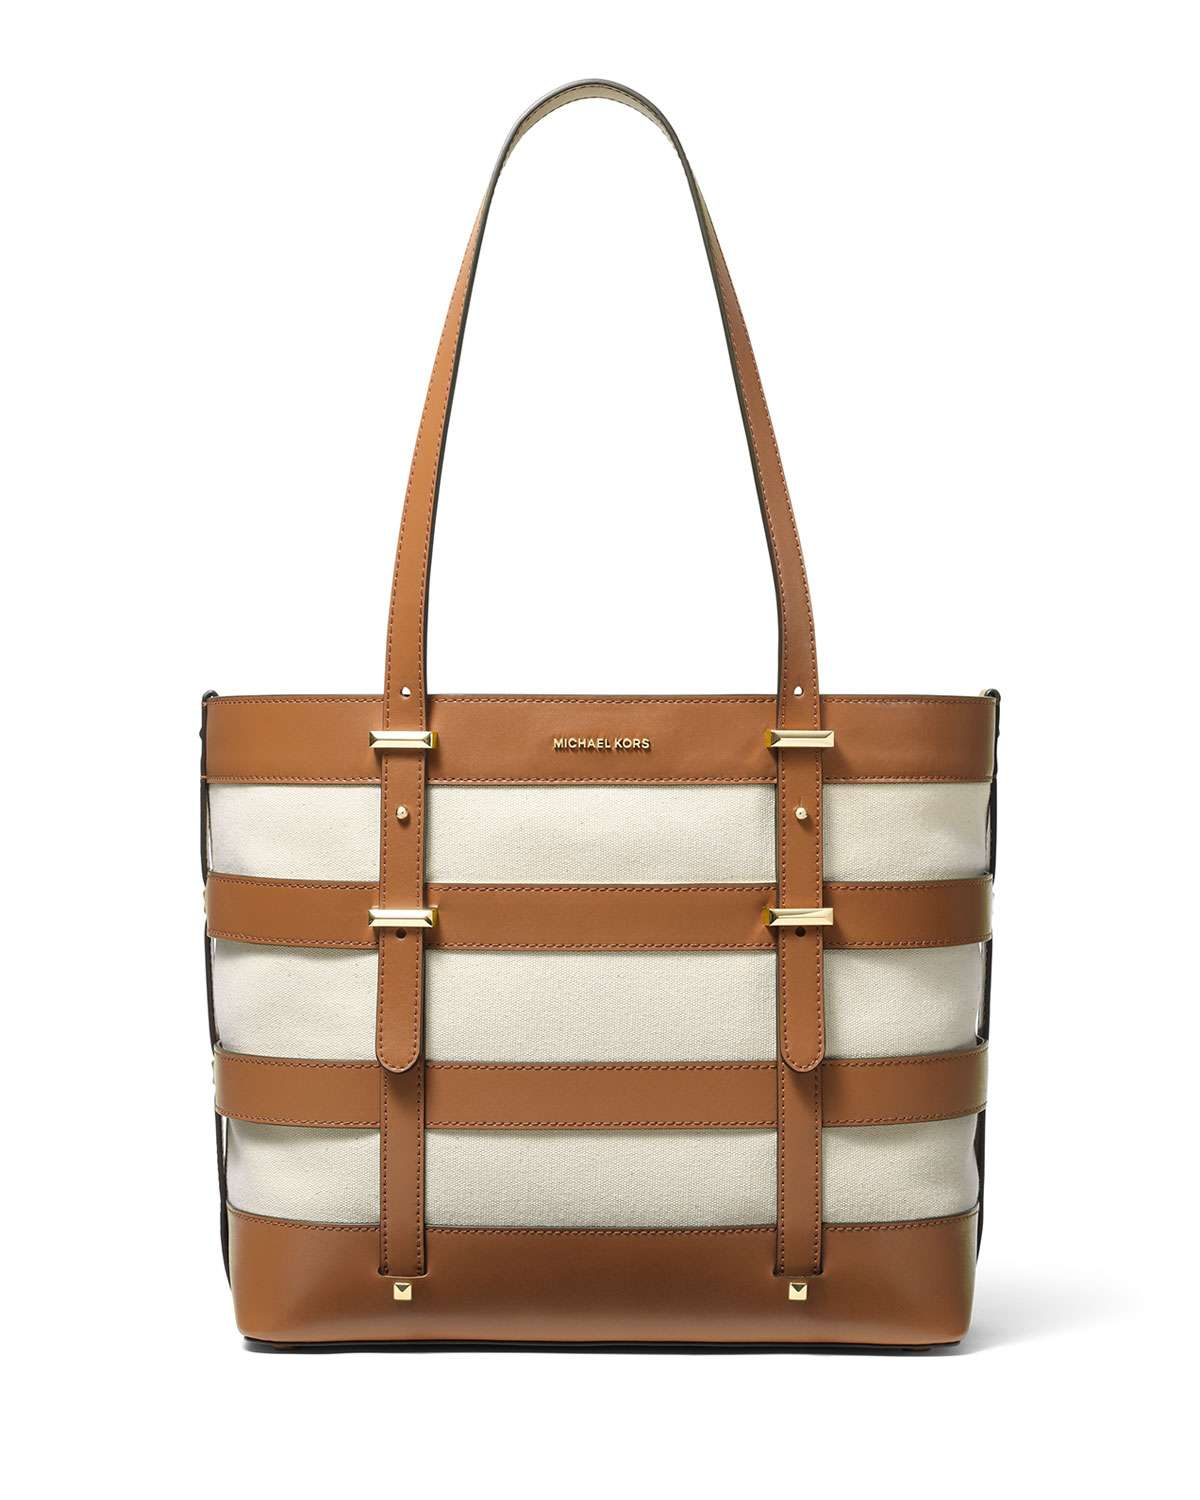 Marie Large Cage Tote Bag